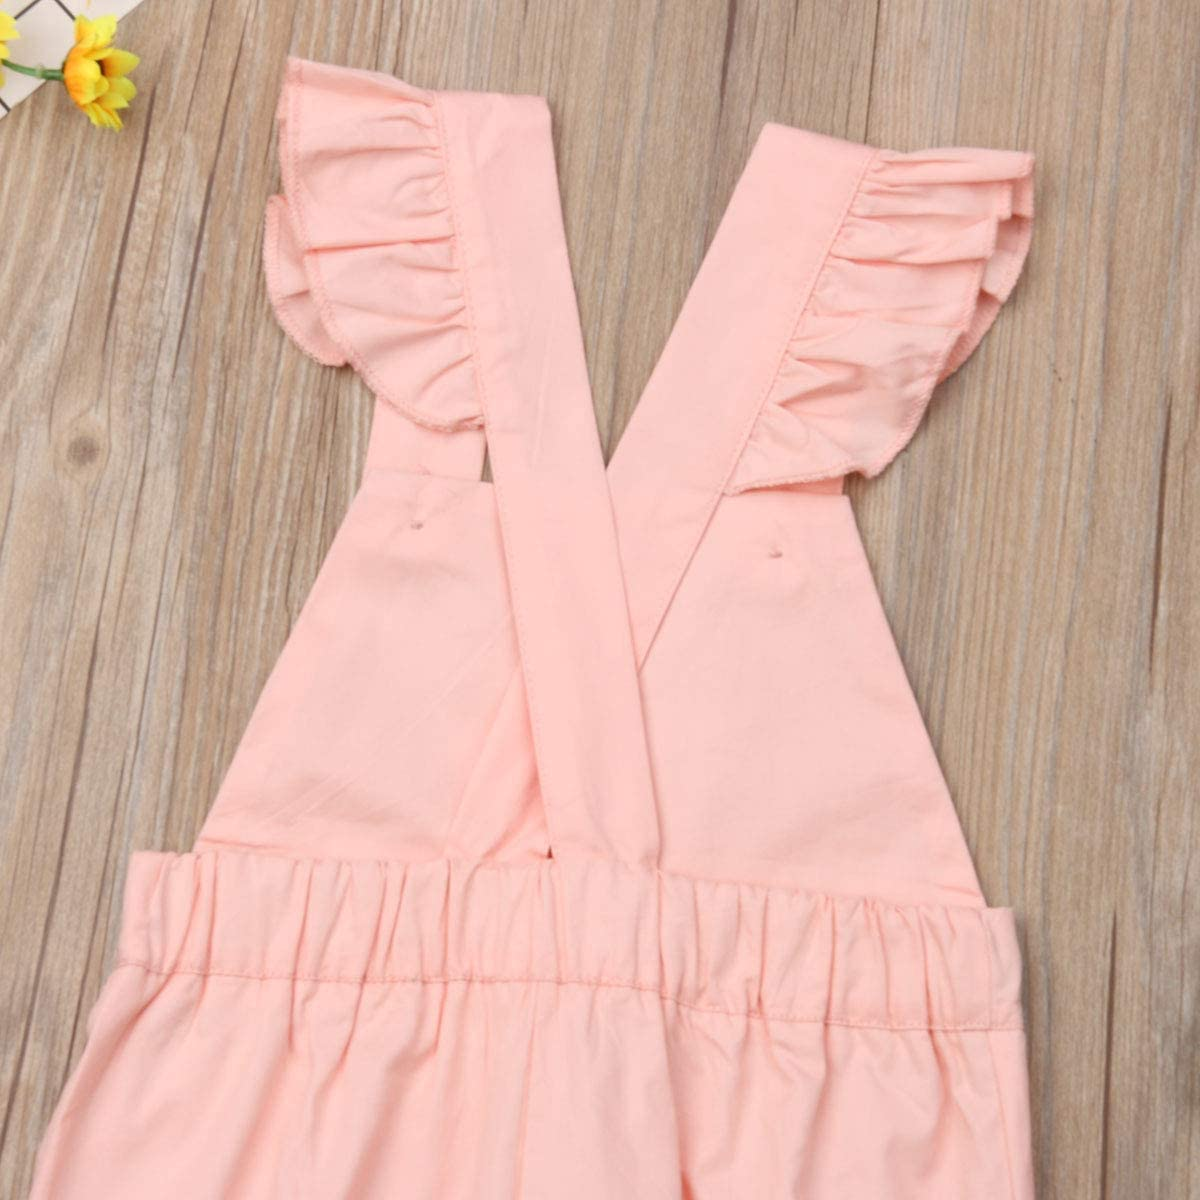 Aunavey Baby Girls Little Kids Long Suspender Pants Overall Elastic Pink Strap Pants